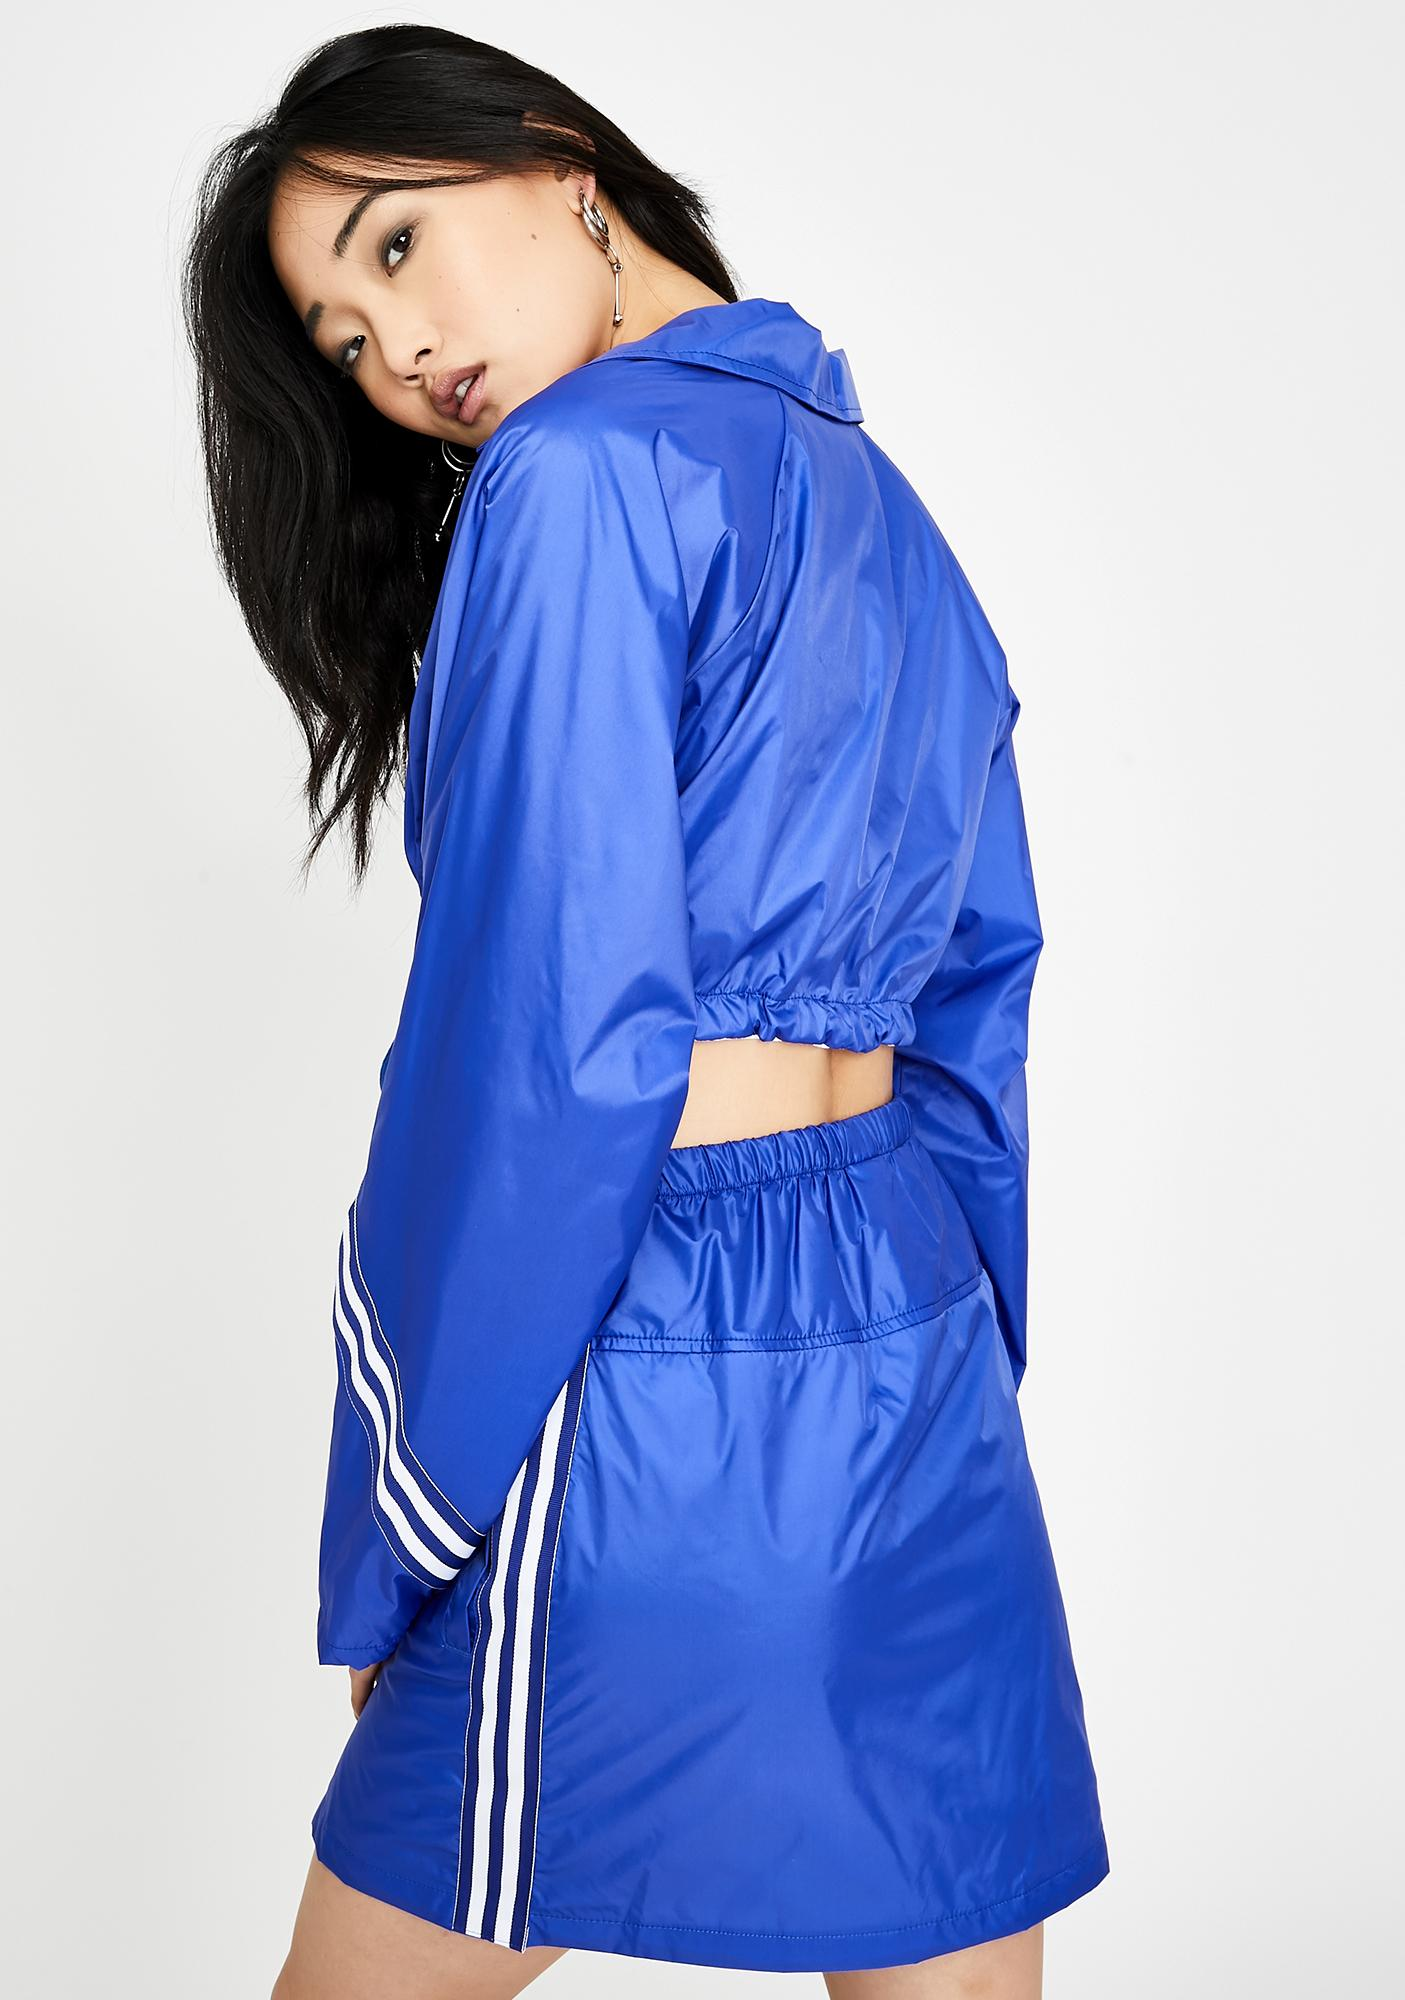 Rojas Berry Chaotic Track Jacket